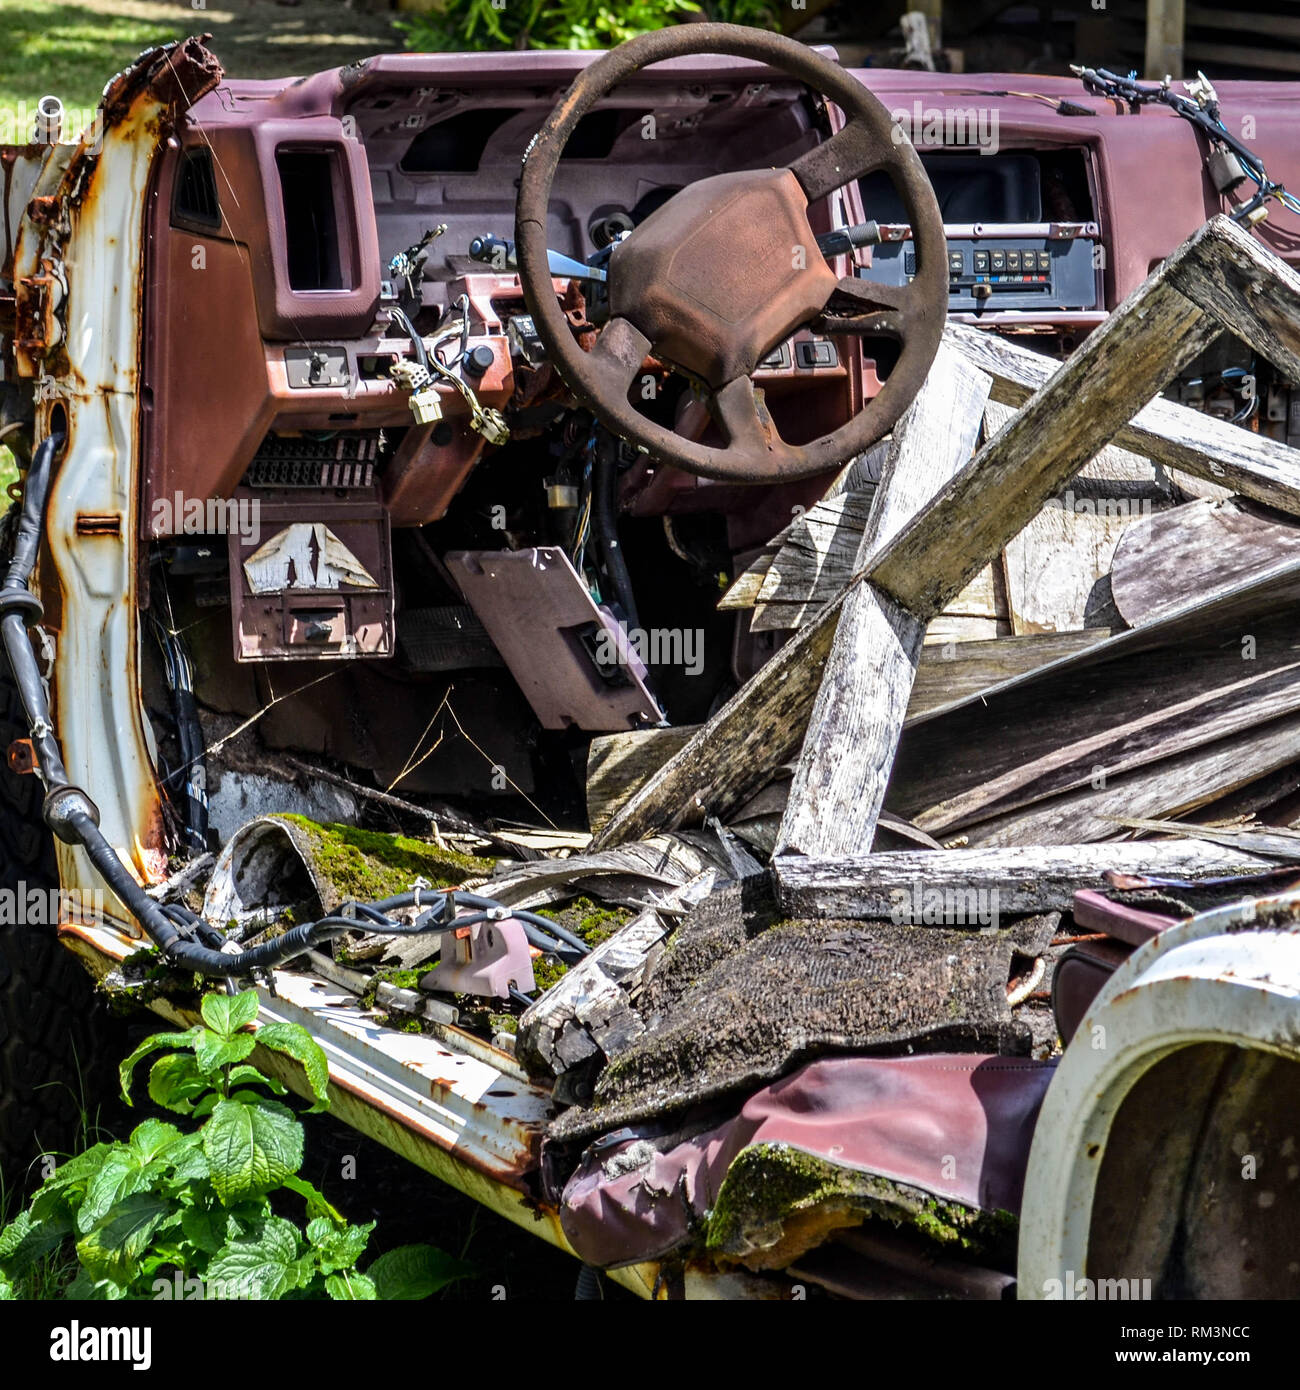 A decrepit Nissan SUV and miscellaneous wooden debris, Kauai, Hawaii Stock Photo